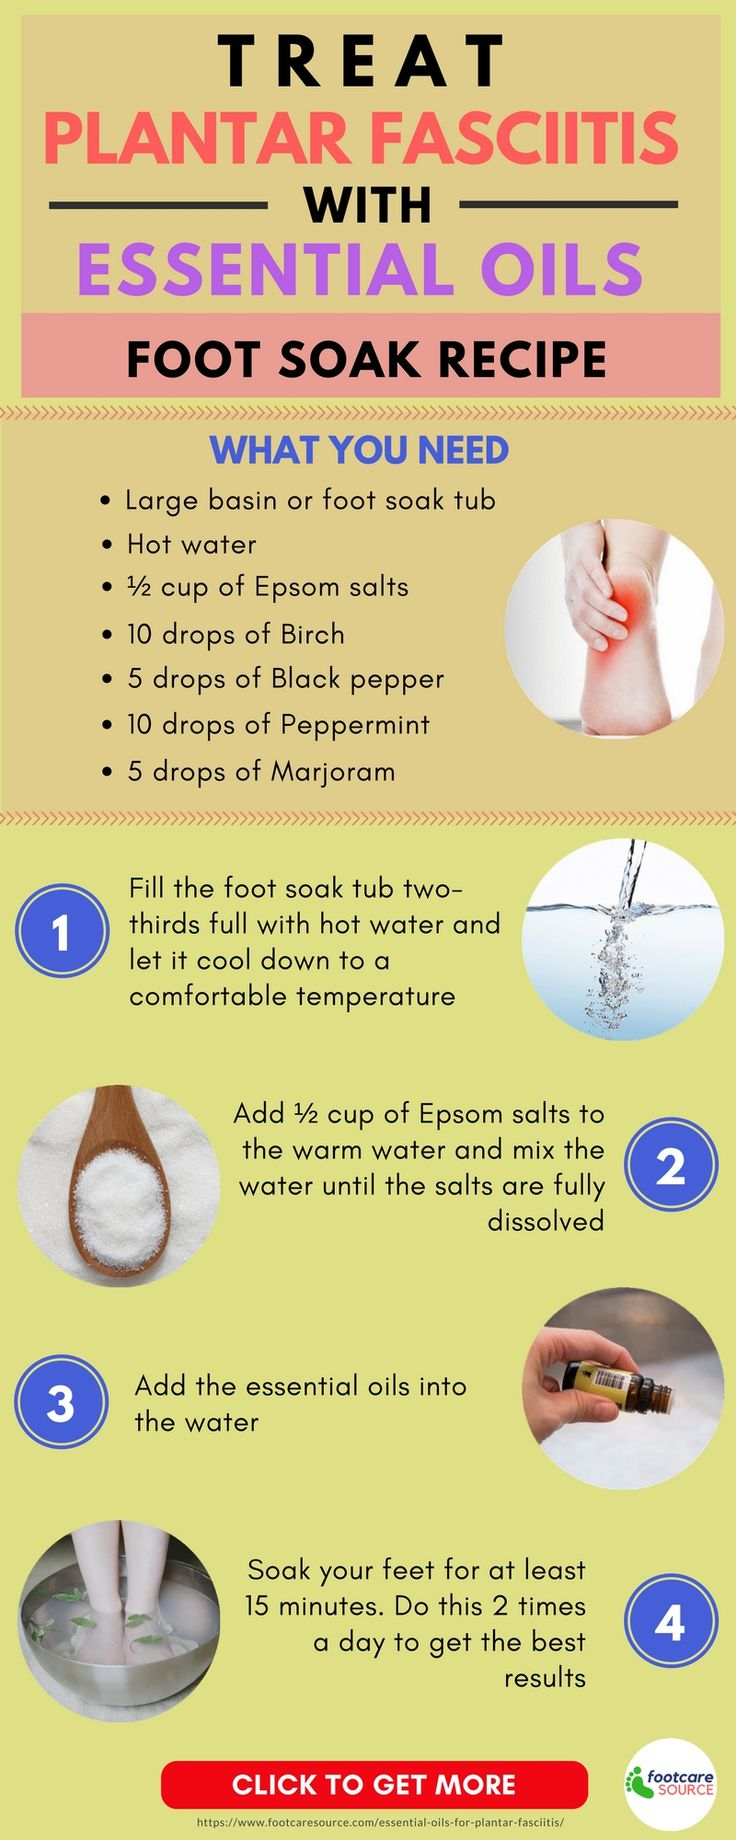 This foot soak recipe shows you how to use essential oils to effectively treat the symptoms of plantar fasciitis. Read the article to find out more about foot care tips.